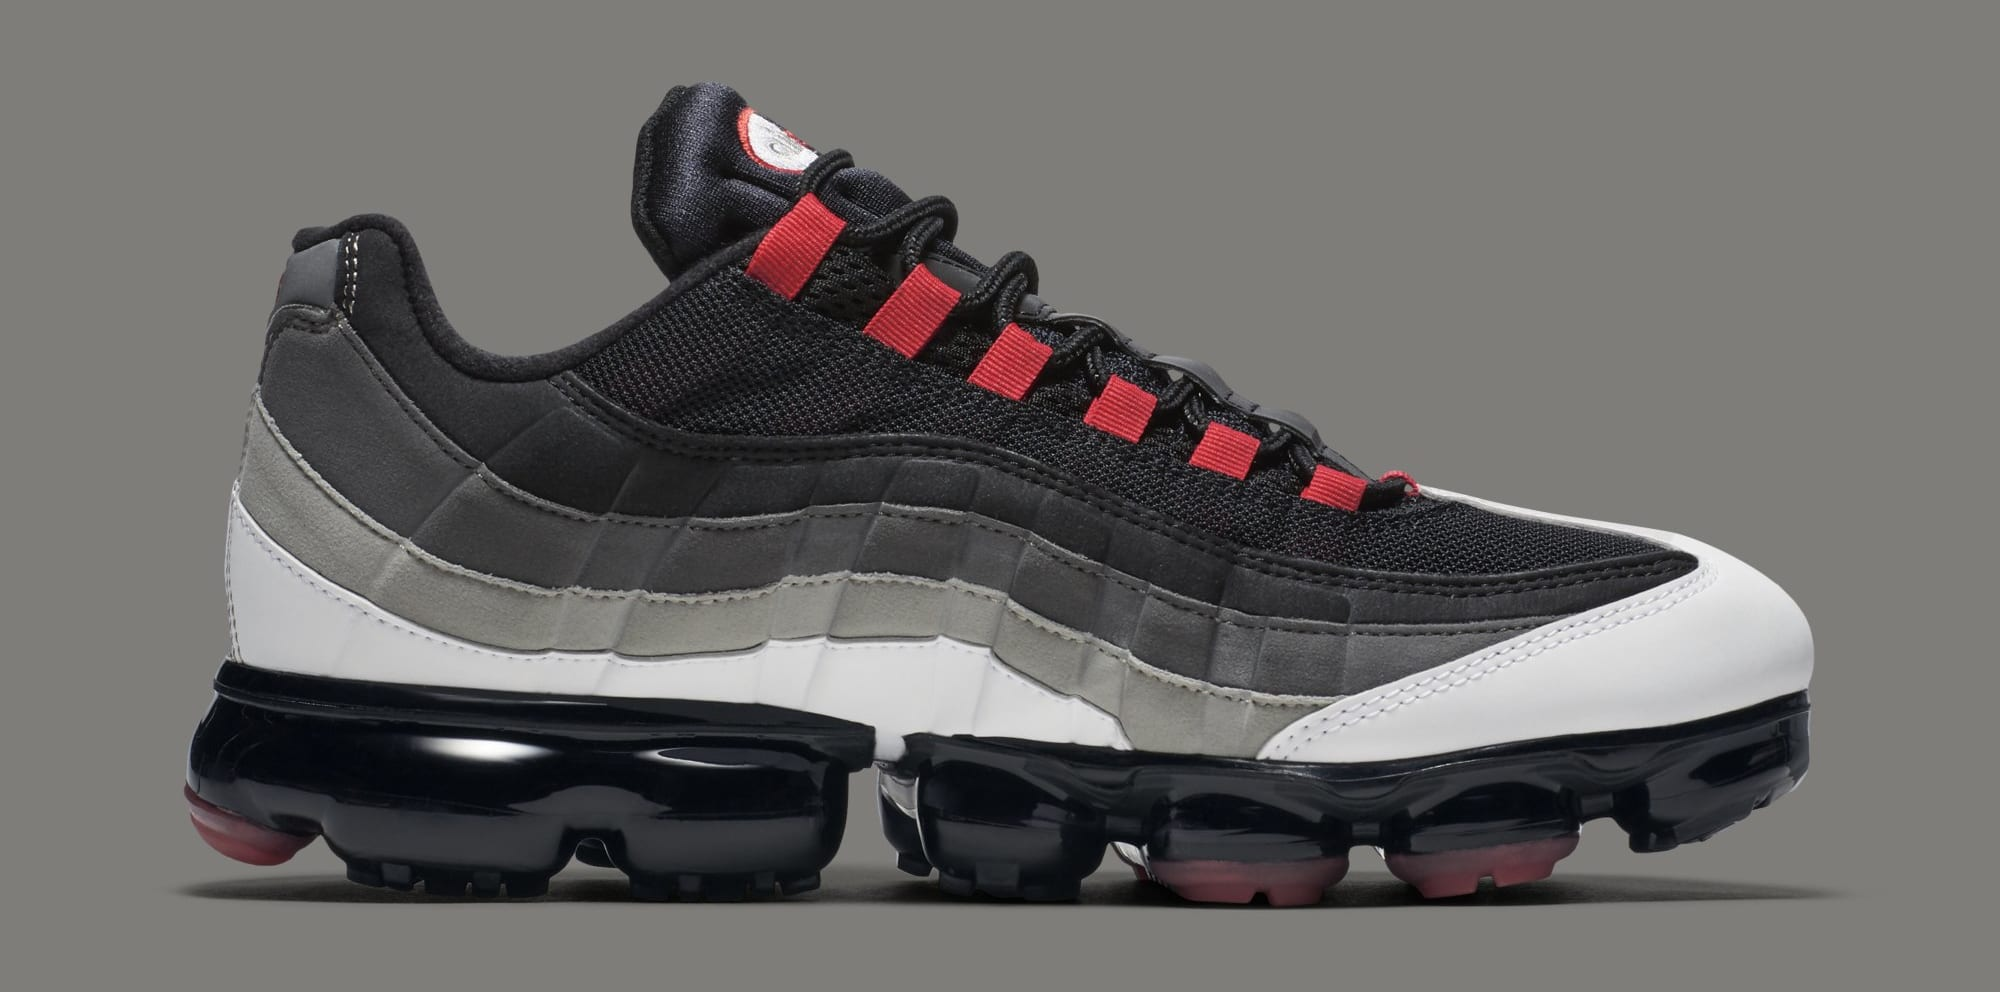 size 40 a82c2 a4820 Nike Air VaporMax 95 'White/Hot Red-Dark Pewter-Granite ...